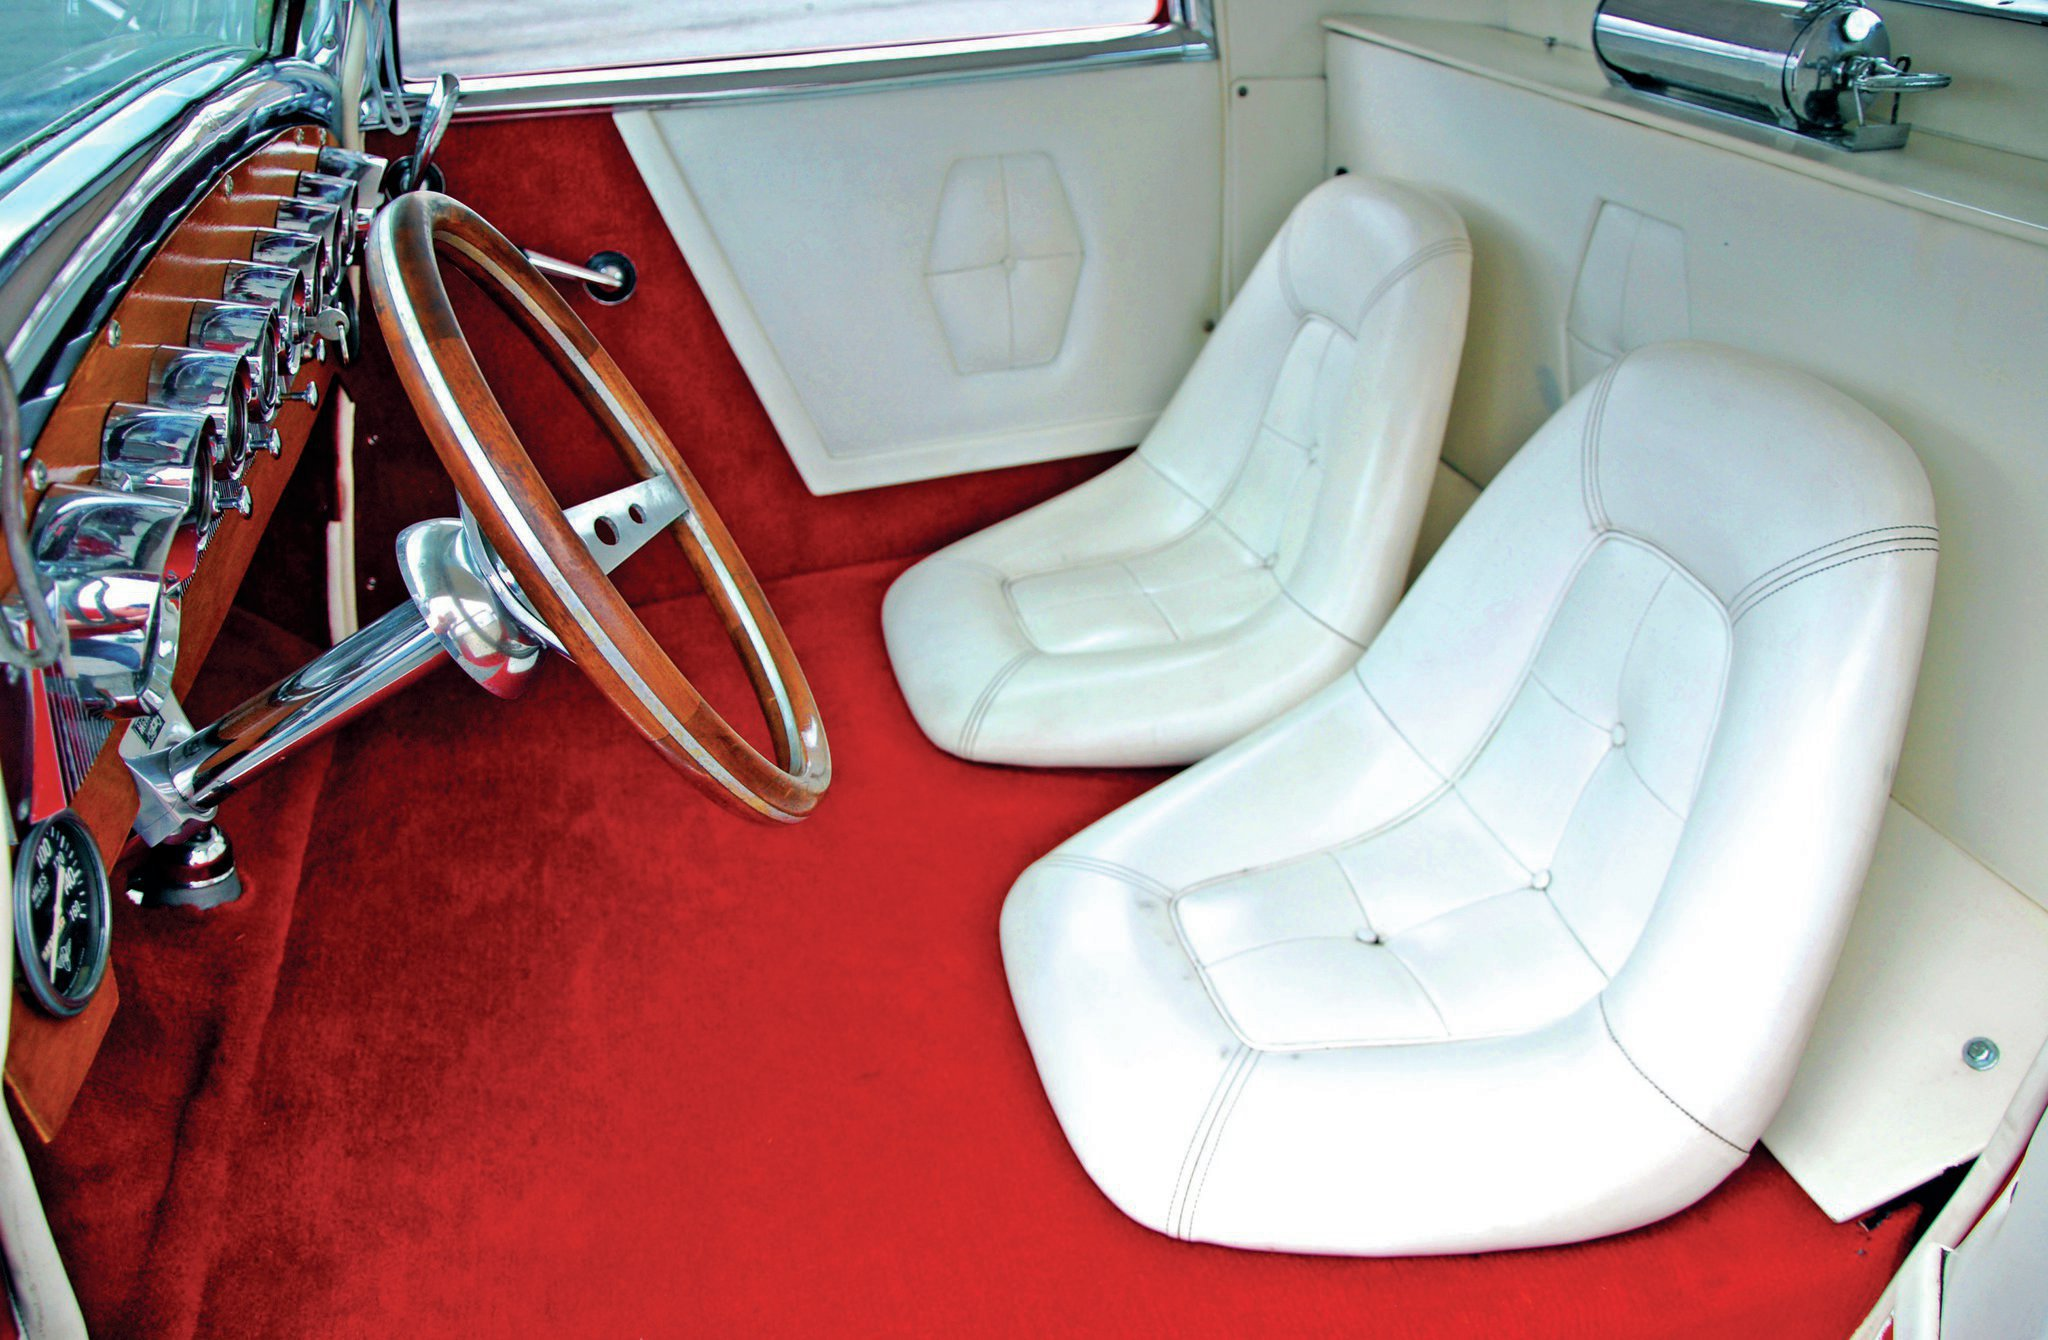 Seats were custom made to fit the shrunken cockpit, which was the result of the hot rod's heavy channel.